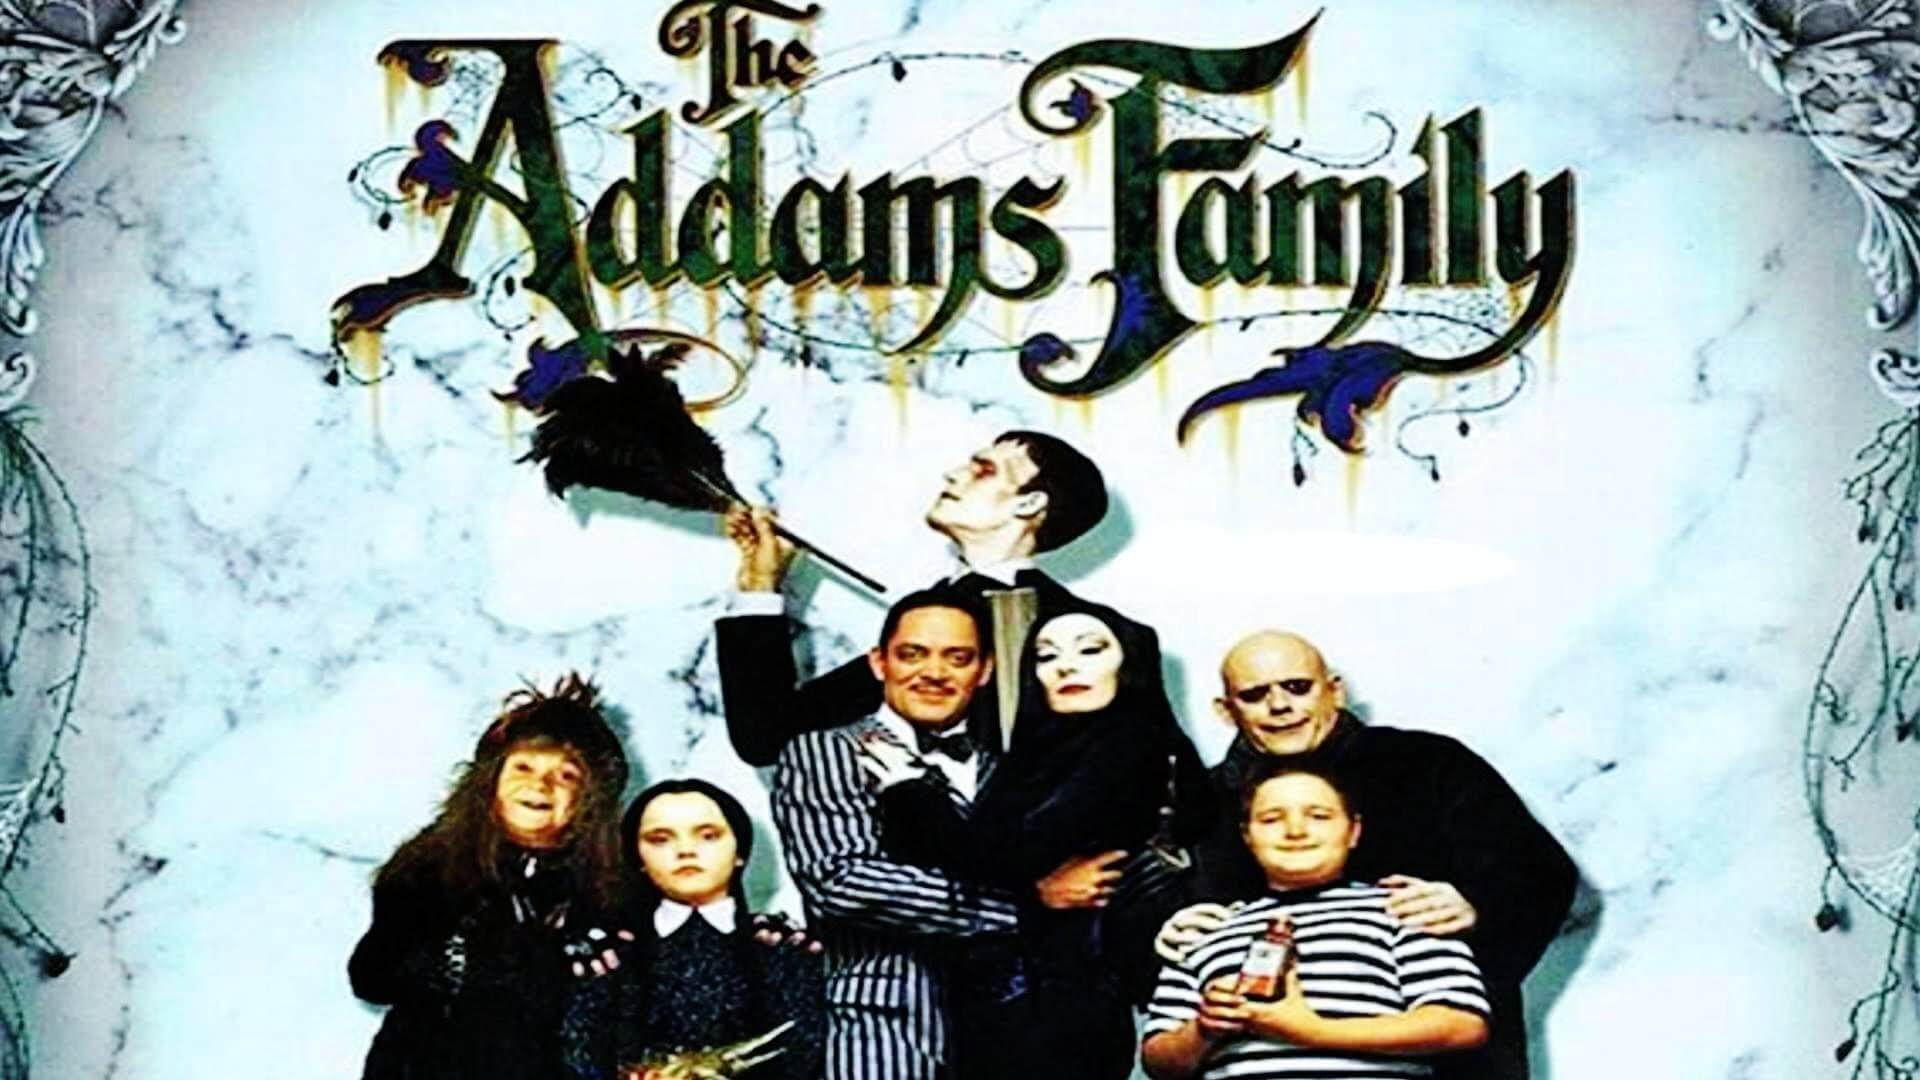 THE ADAMS FAMILY halloween movie